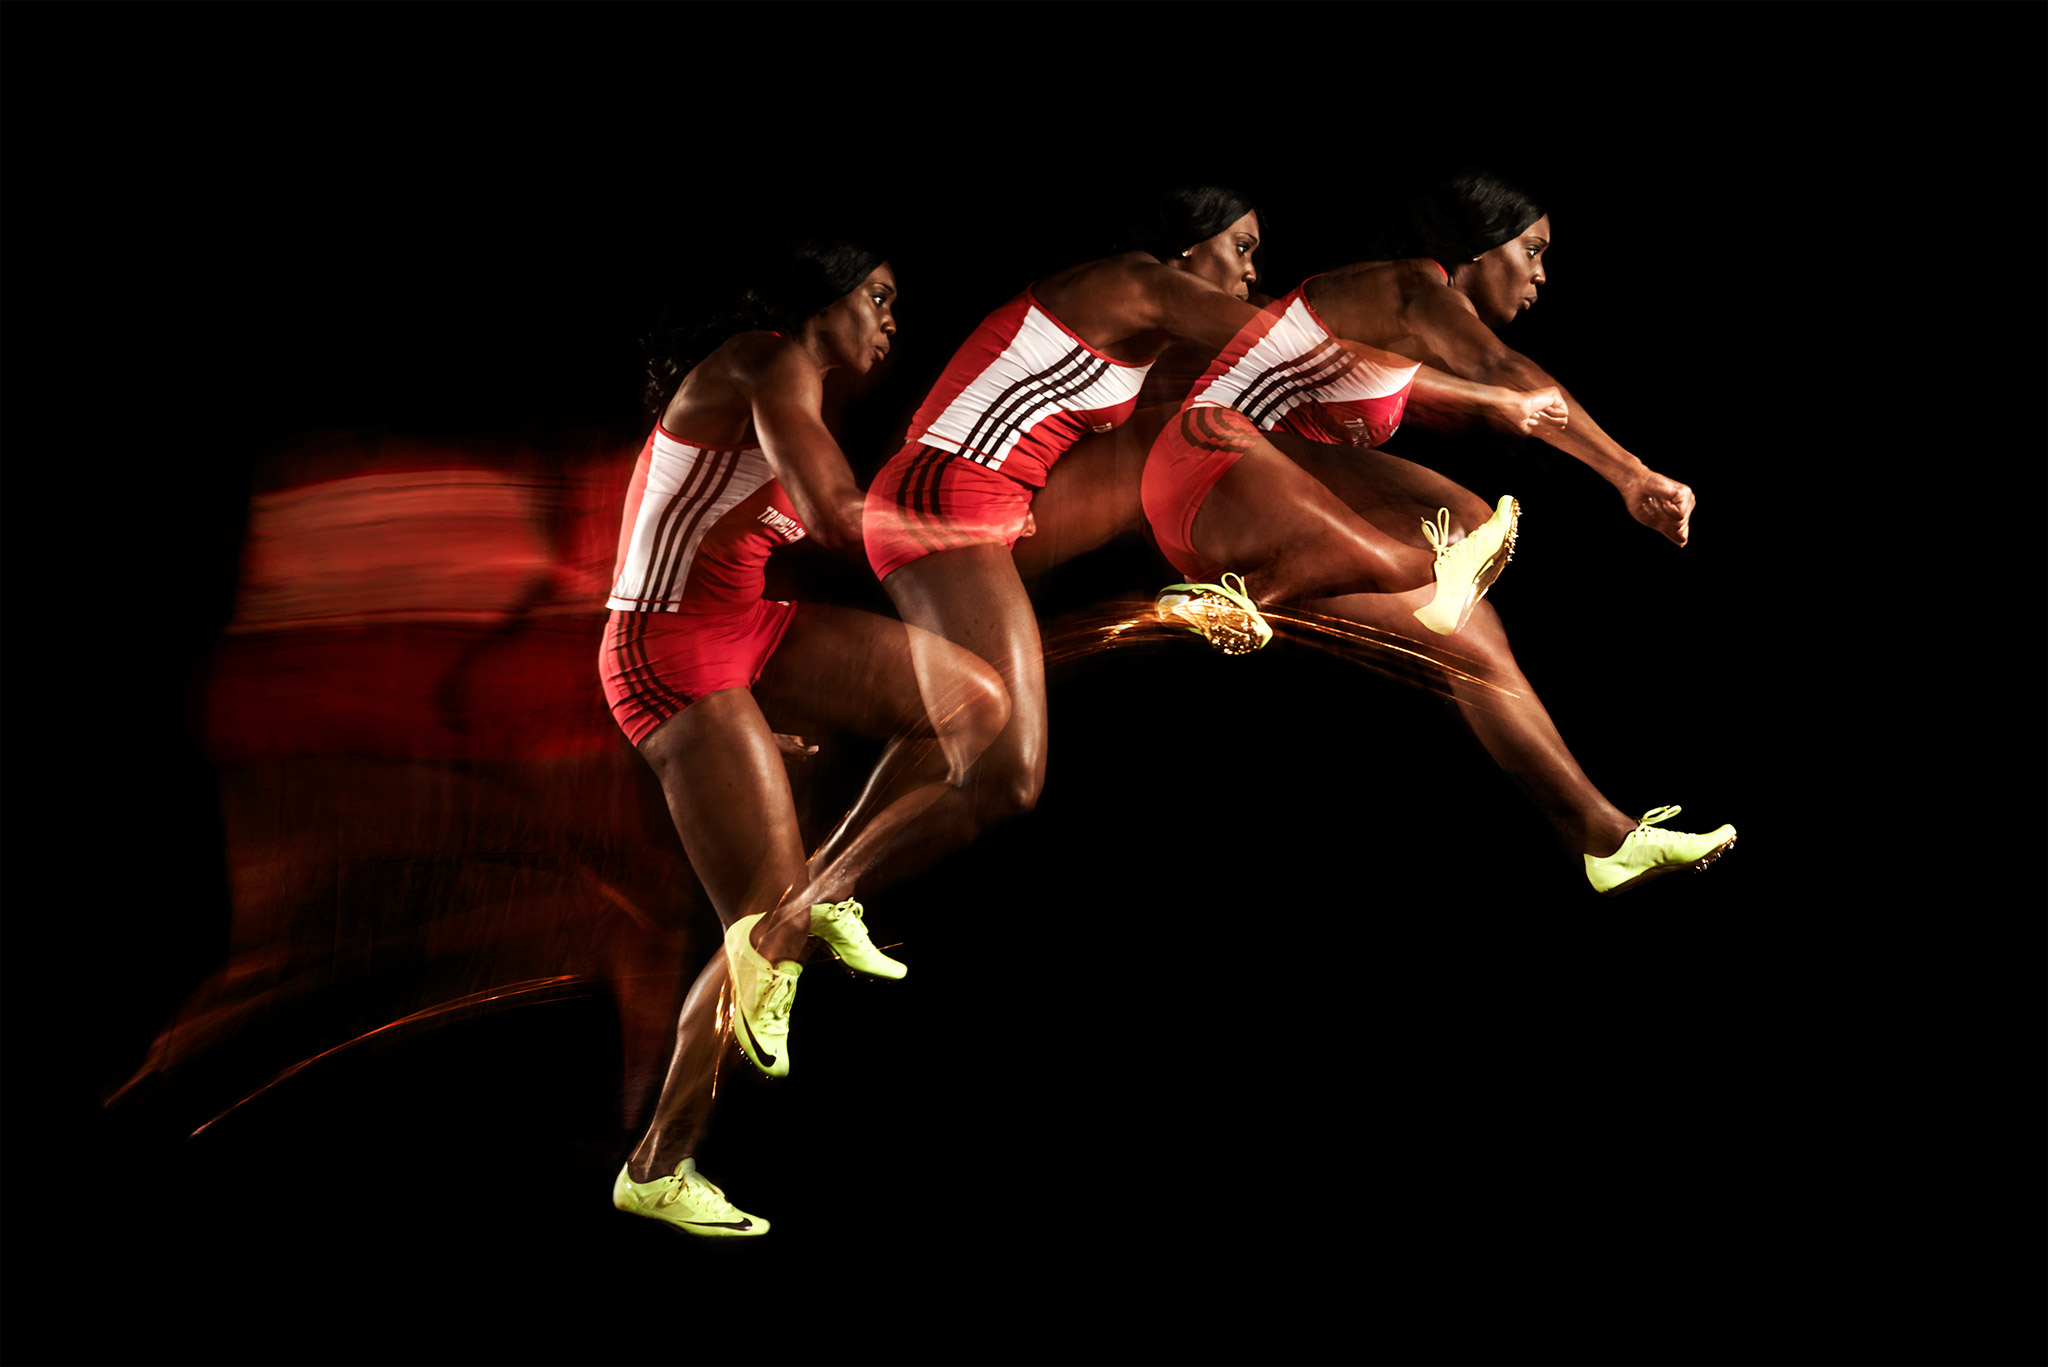 Hurdlers Trajectory Over A Hurdle | Zach Ancell Photography